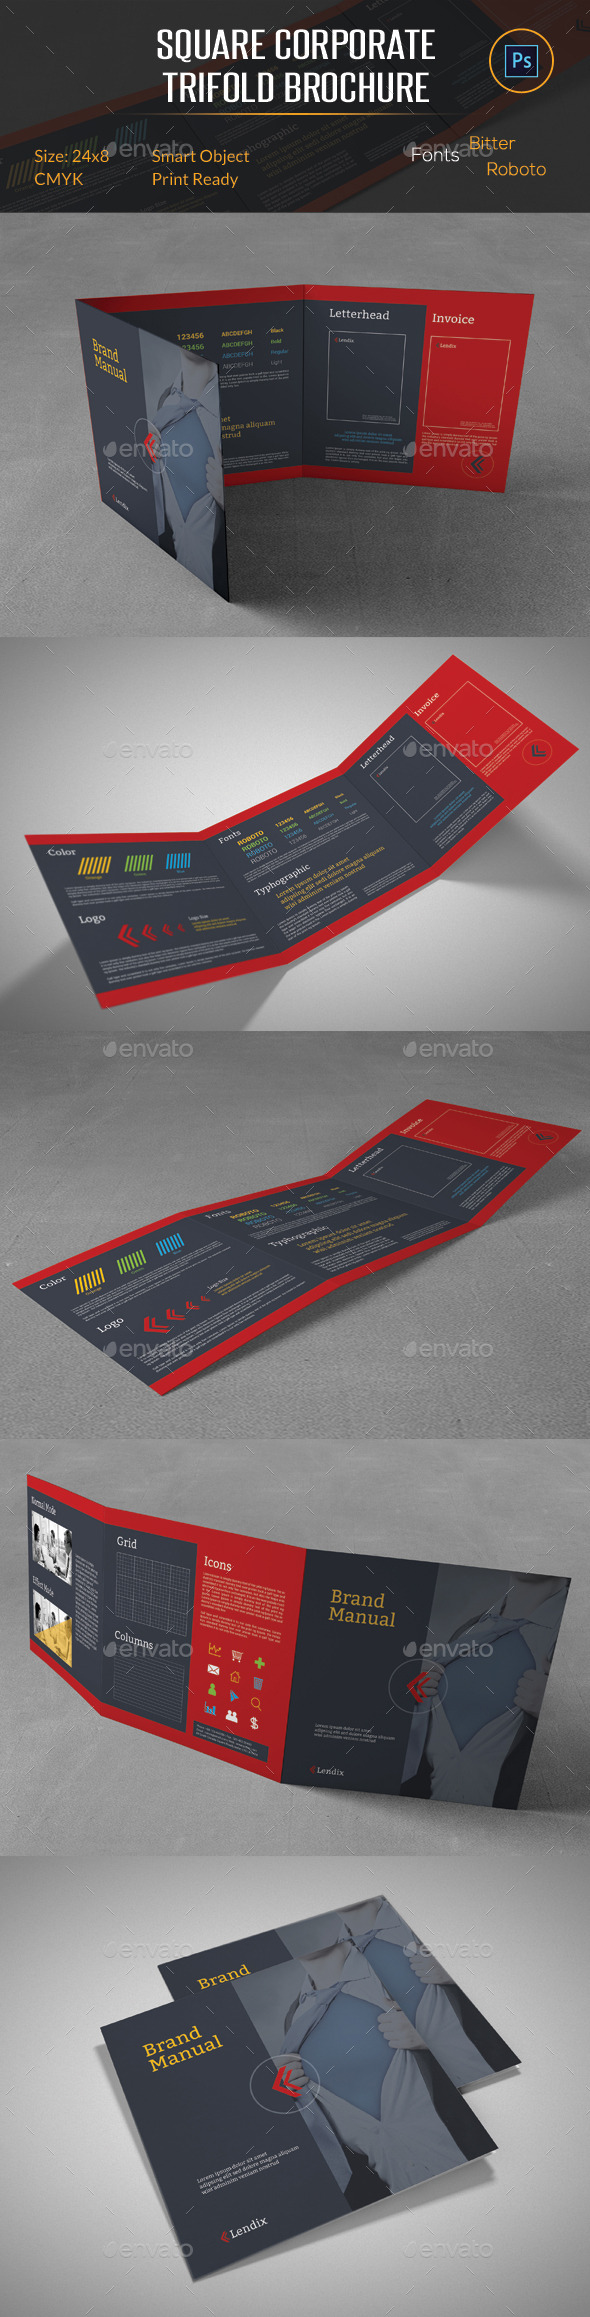 Brand Manual Square Trifold Brochure - Corporate Brochures